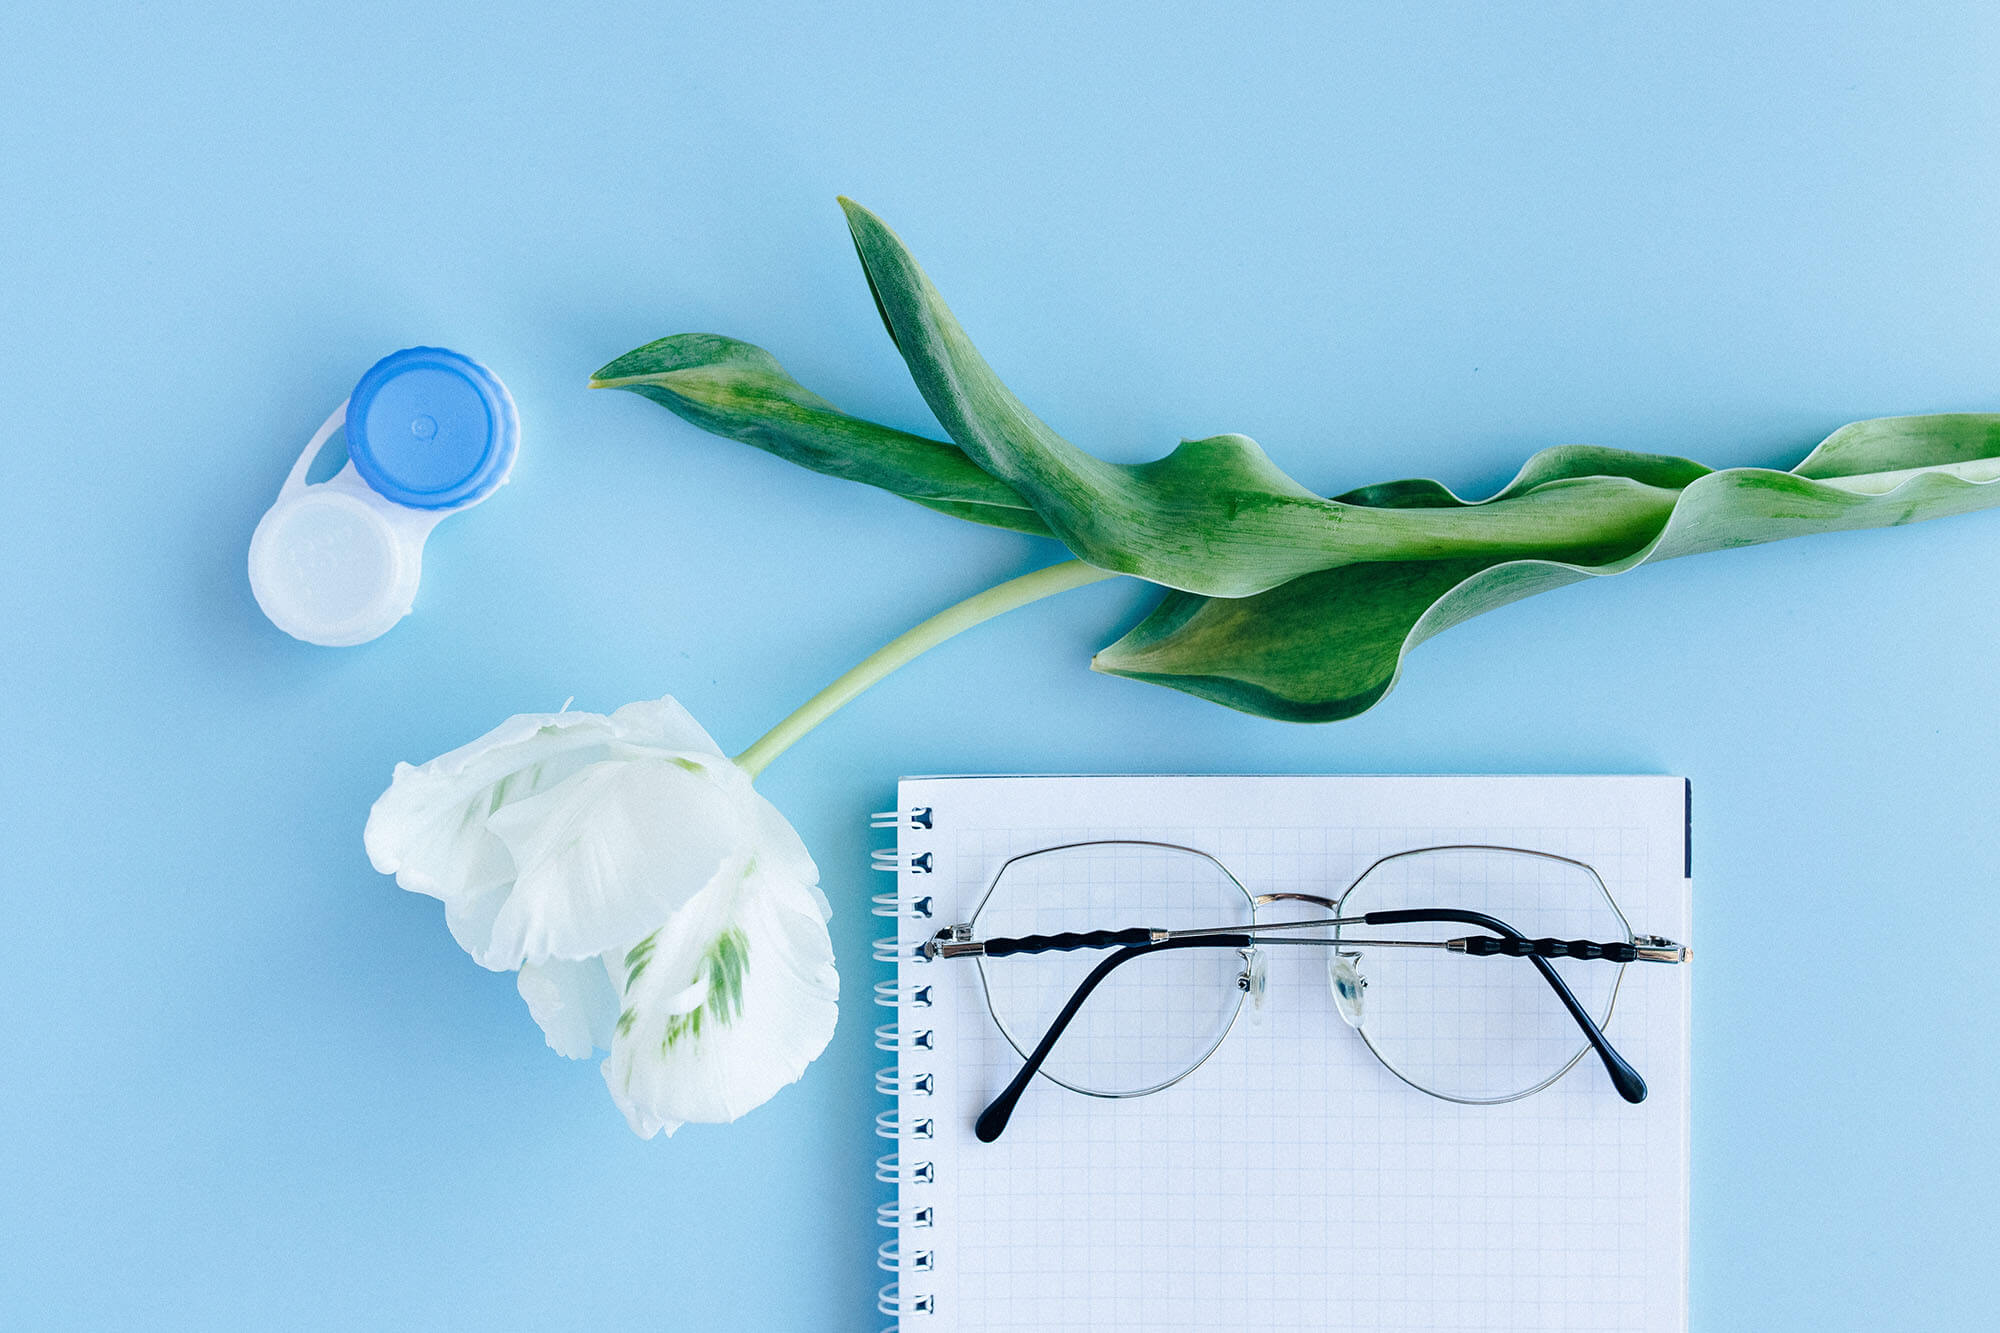 Contact Lenses and Lens Care: Instructions for Patients